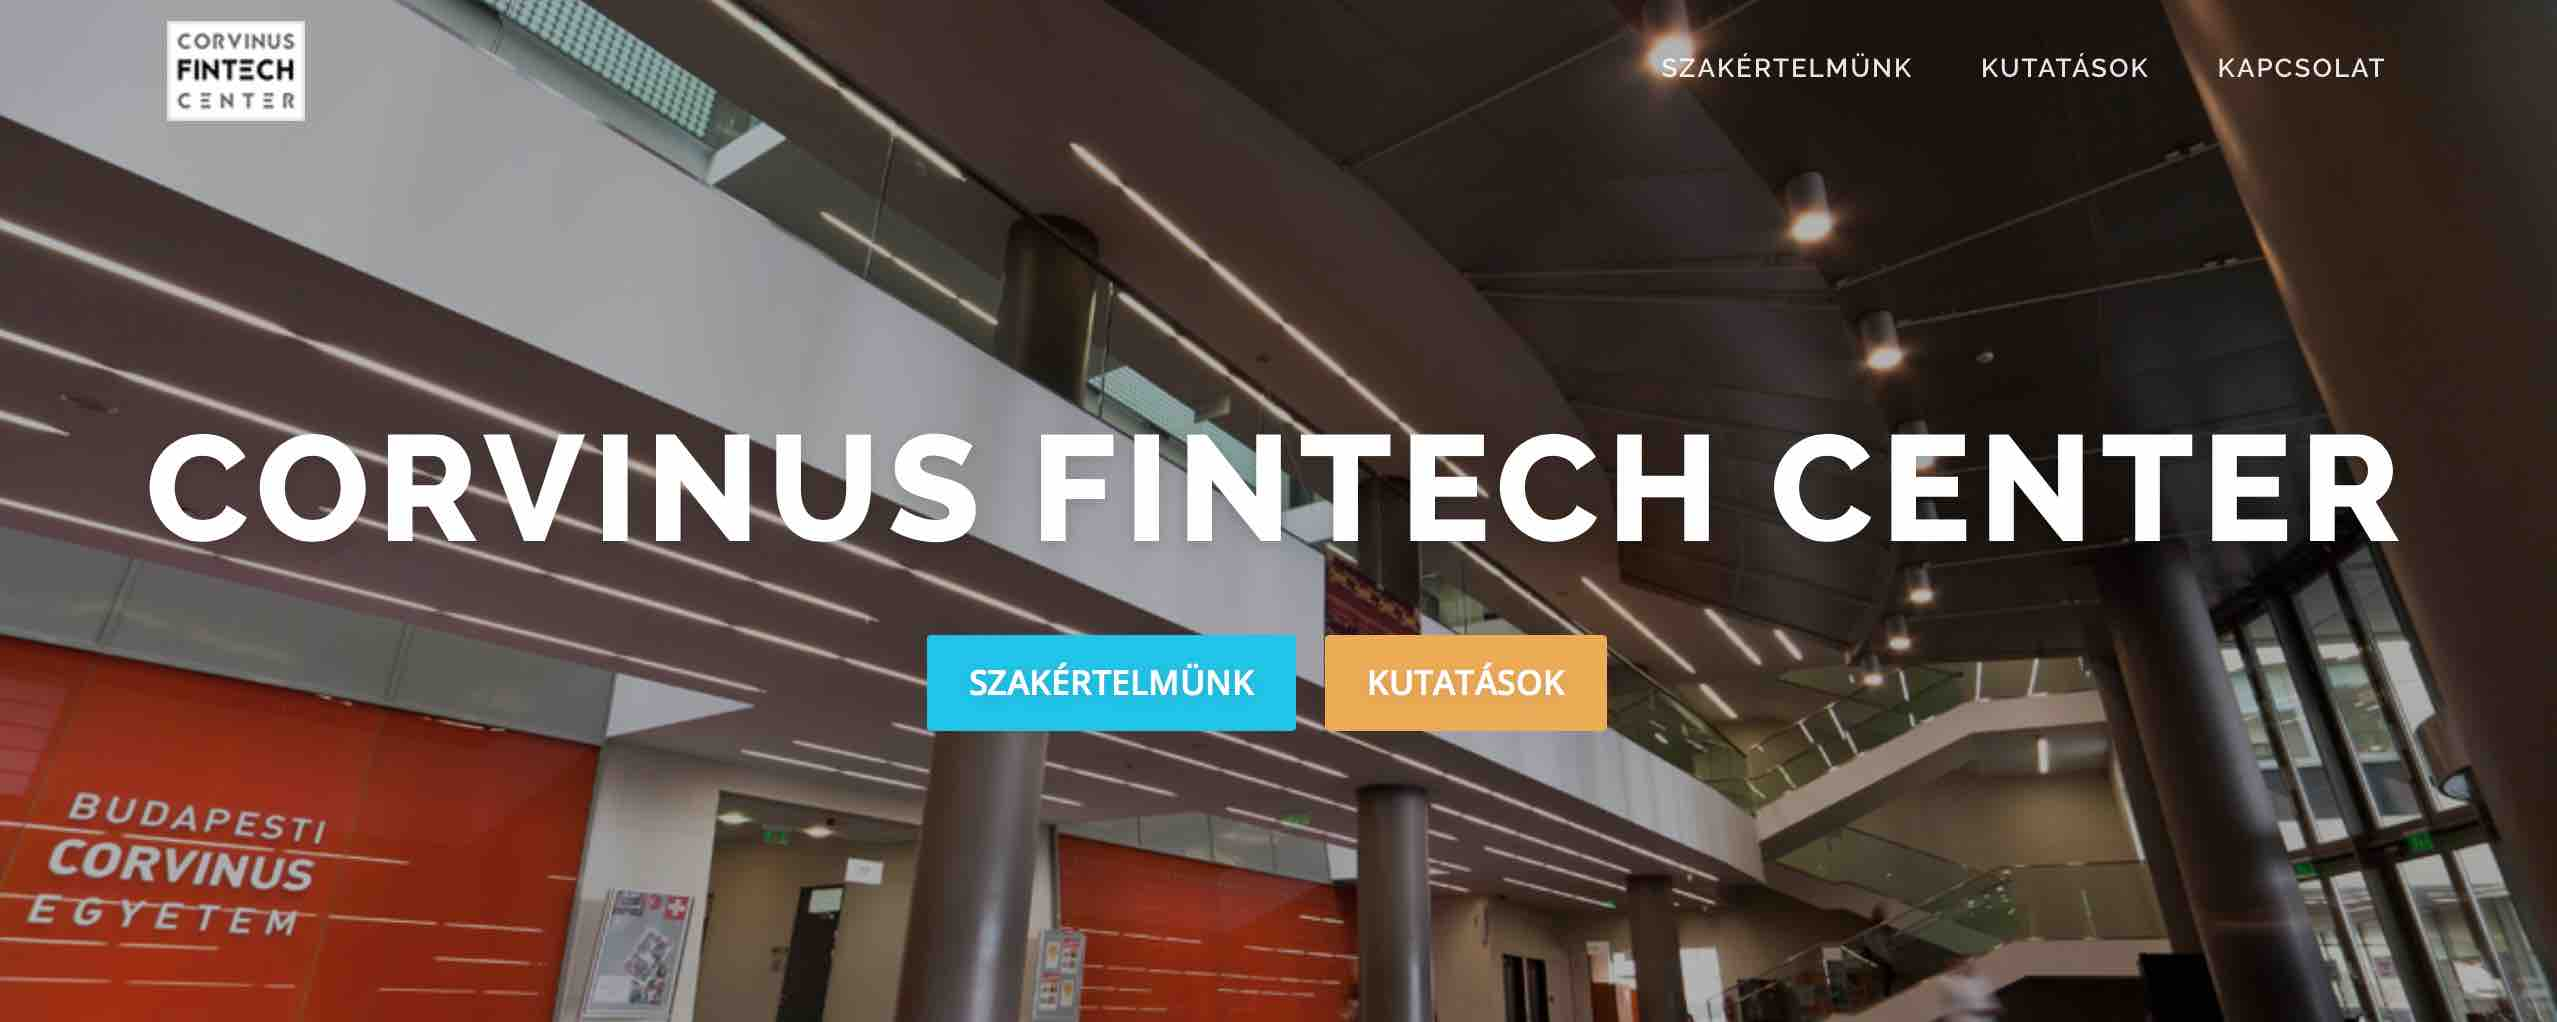 fintech kutato kozpont Corvinus FinTech Center